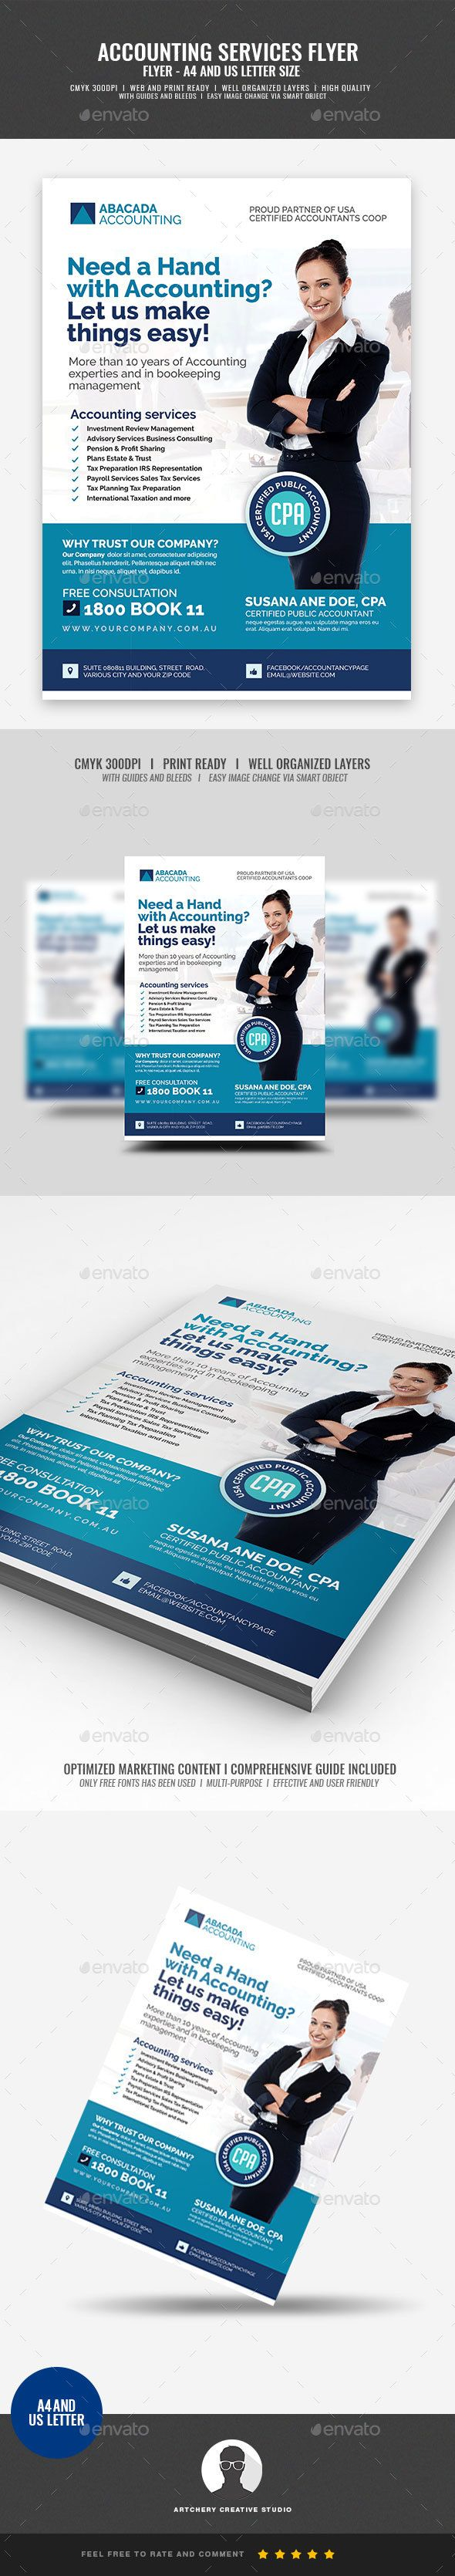 Accounting Firm Flyer Print Templates Flyers Corporate For Better